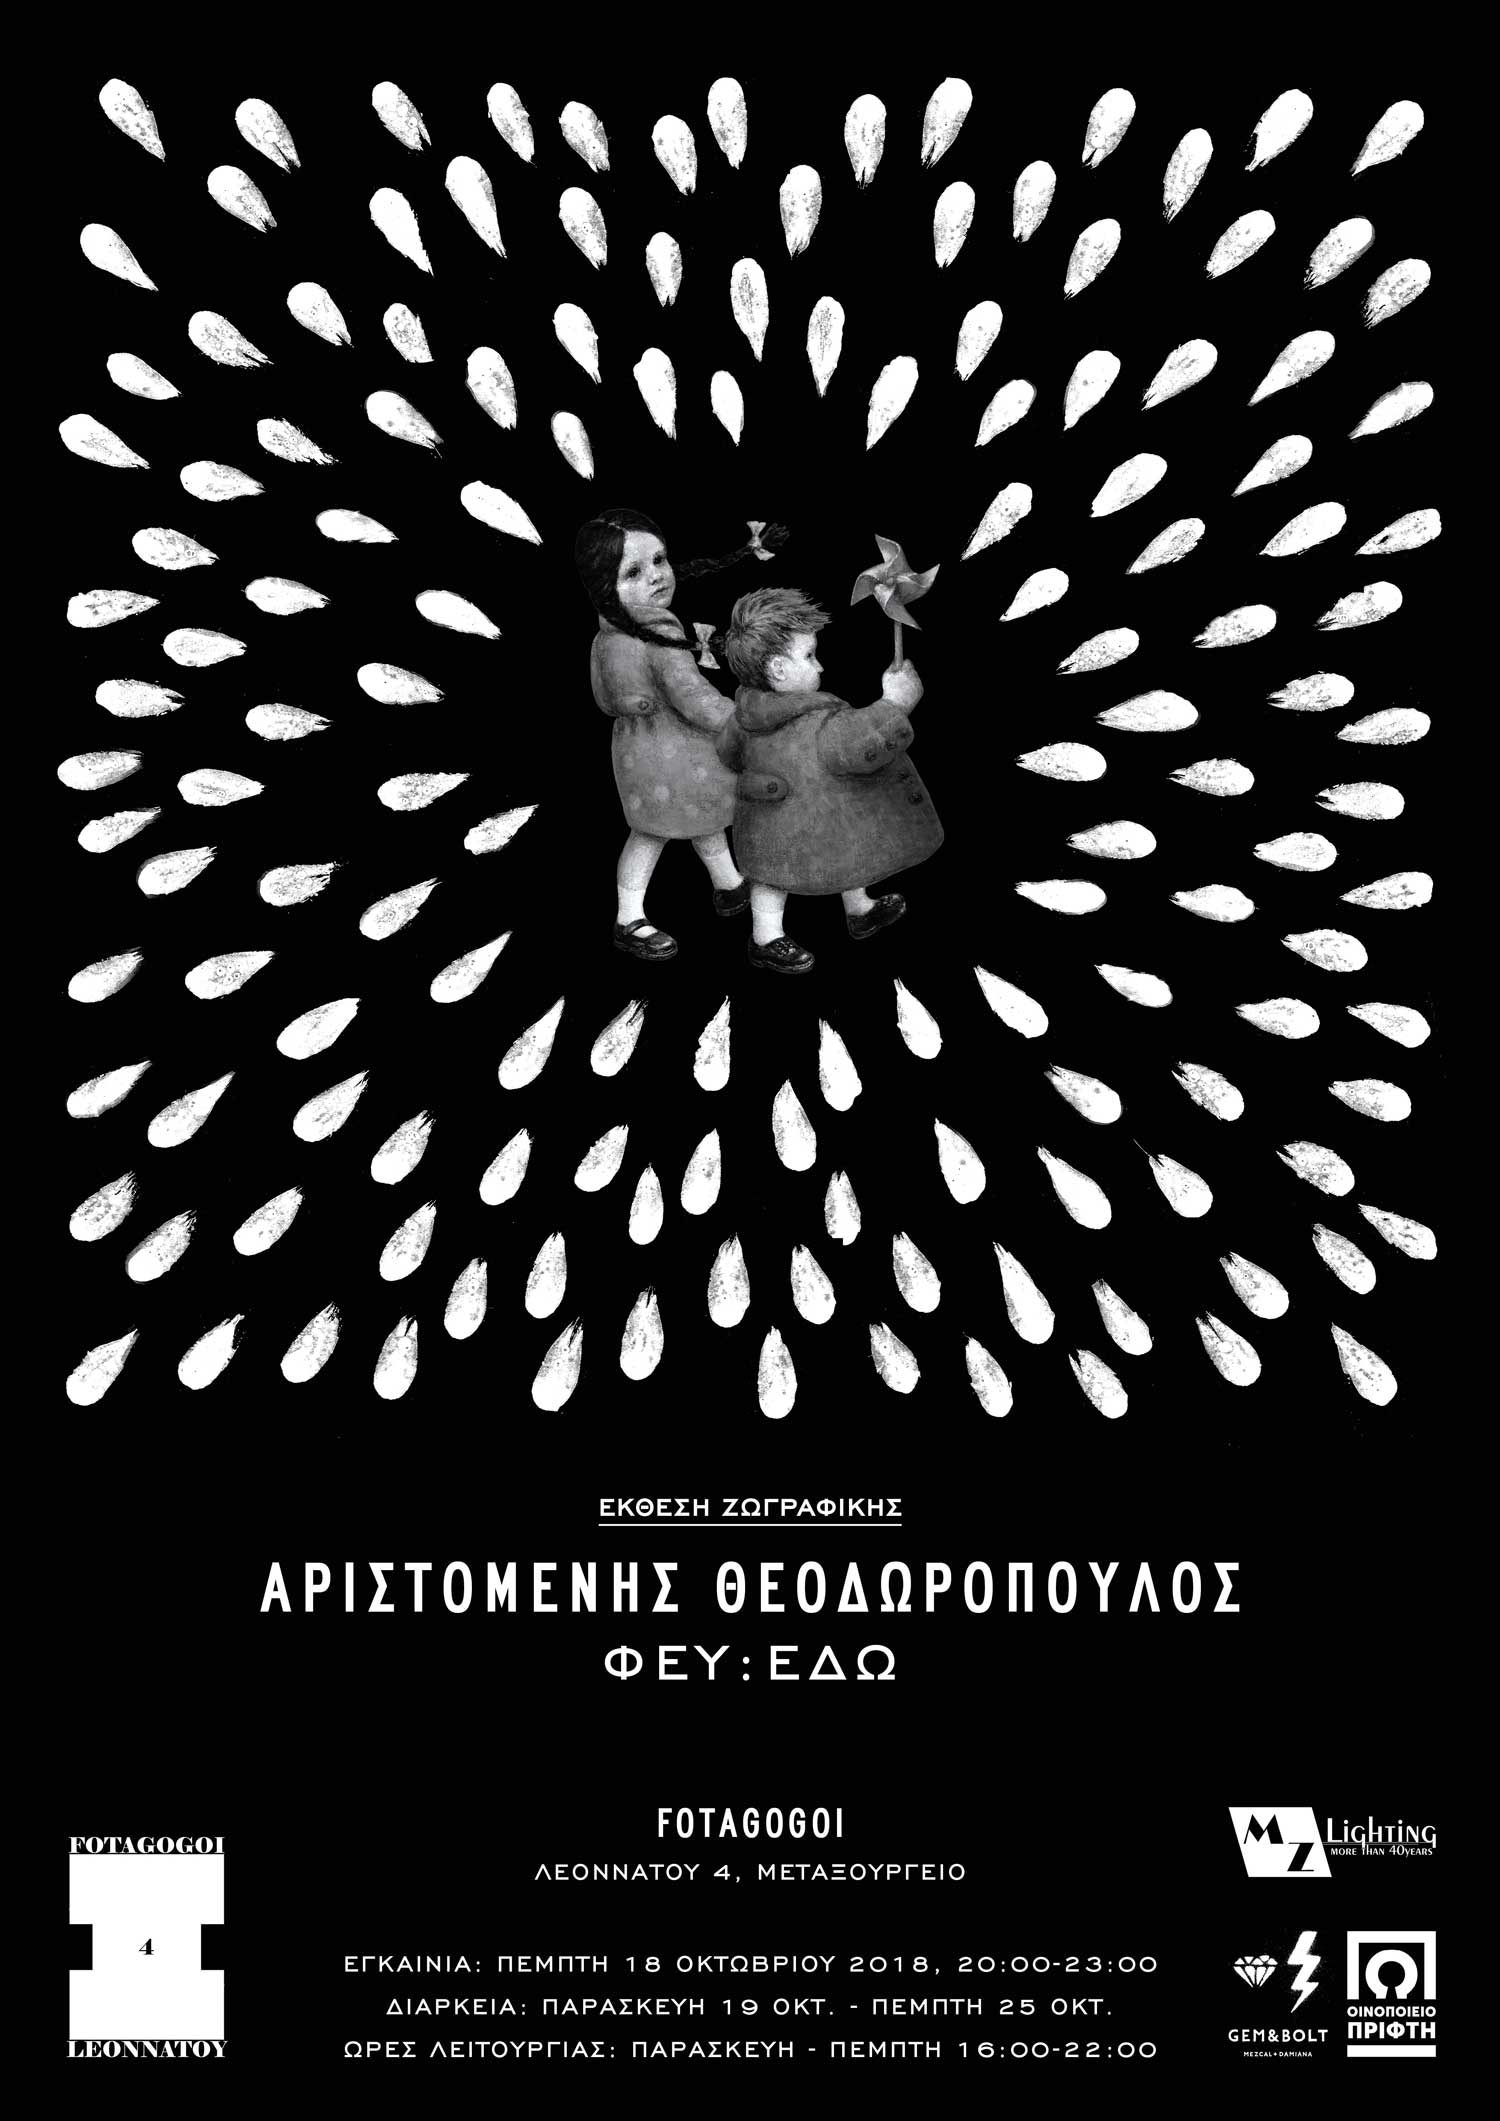 FEF : HERE | Aristomenis theodoropoulos - Solo show, FOTAGOGOI, Athens - October 18th -October 25th, 2018